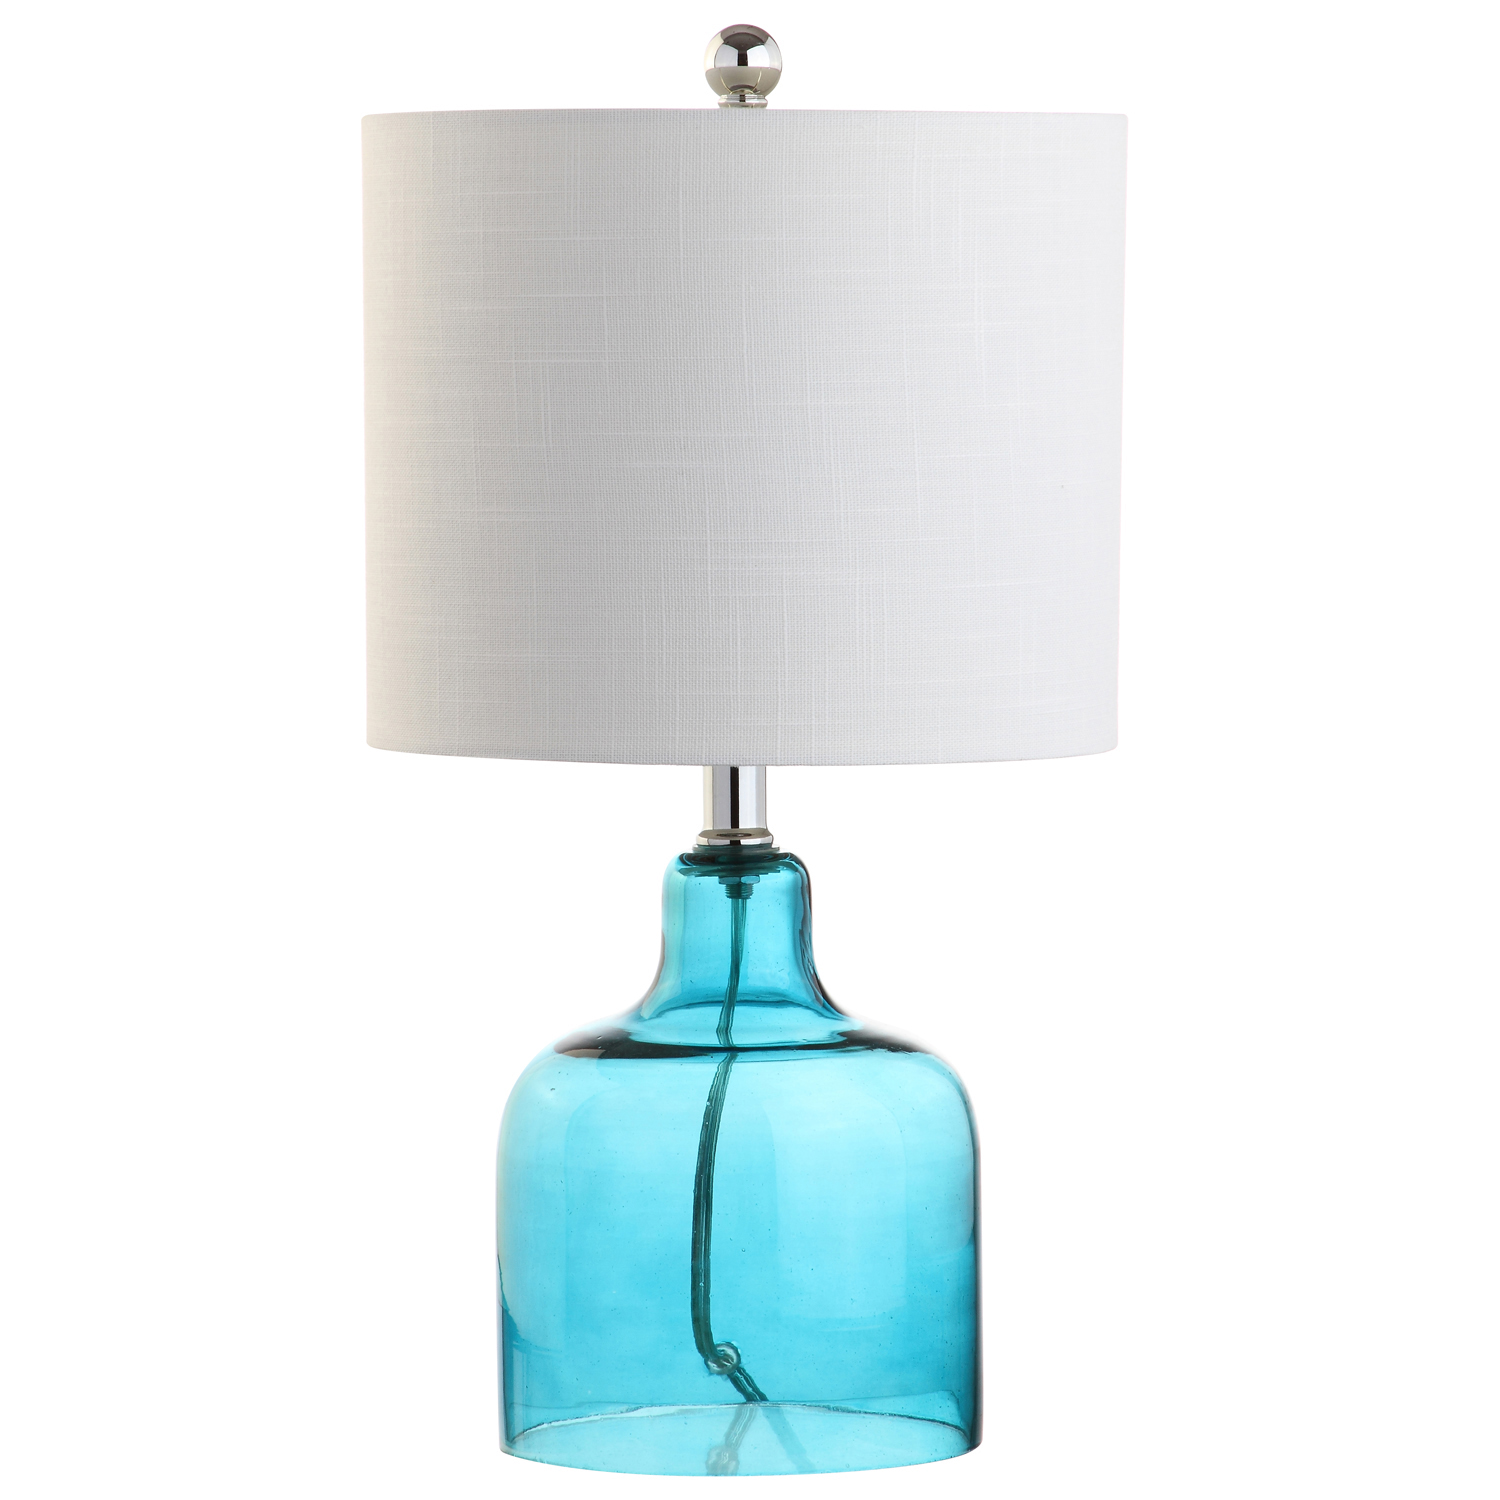 Moroccan Blue Glass Table Lamp